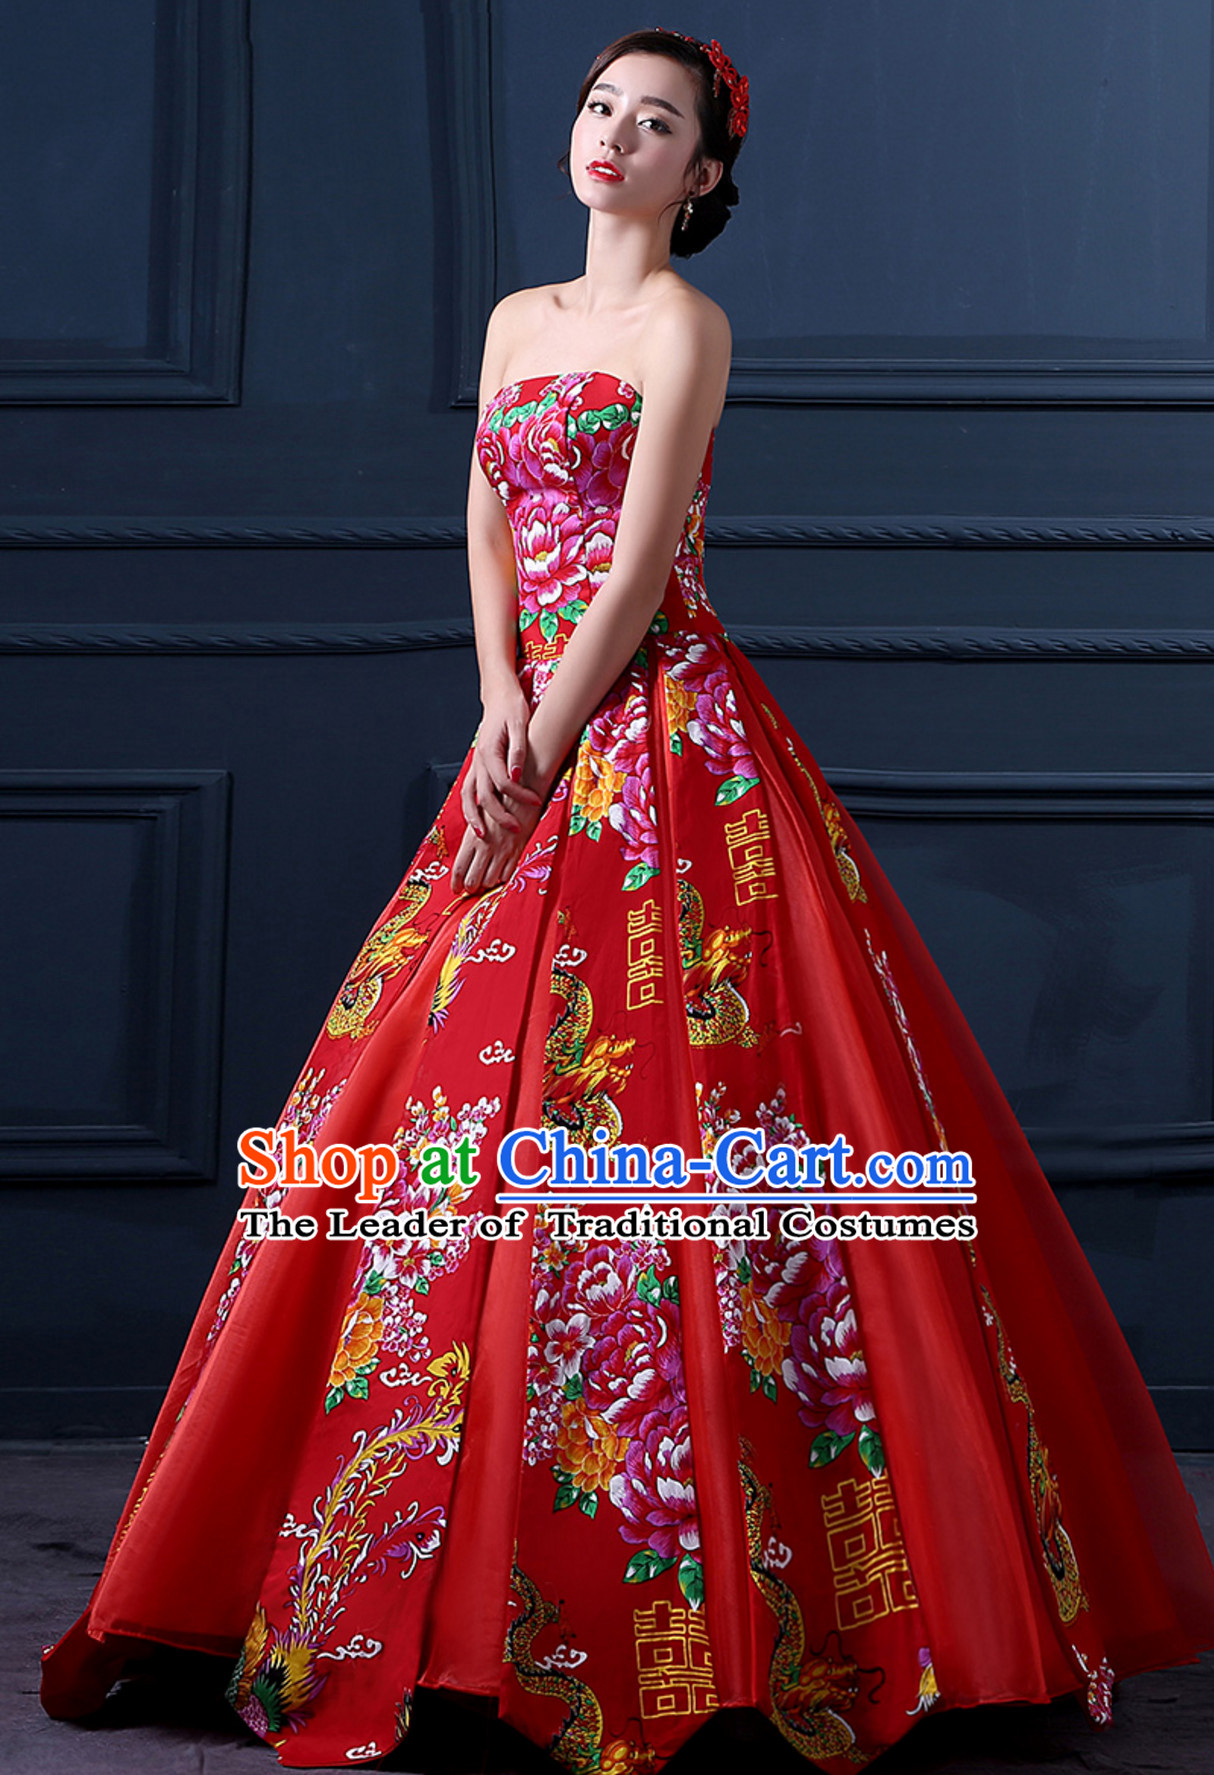 Supreme Chinese Stunning Made to Order Lucky Red Long Wedding Evening Dress